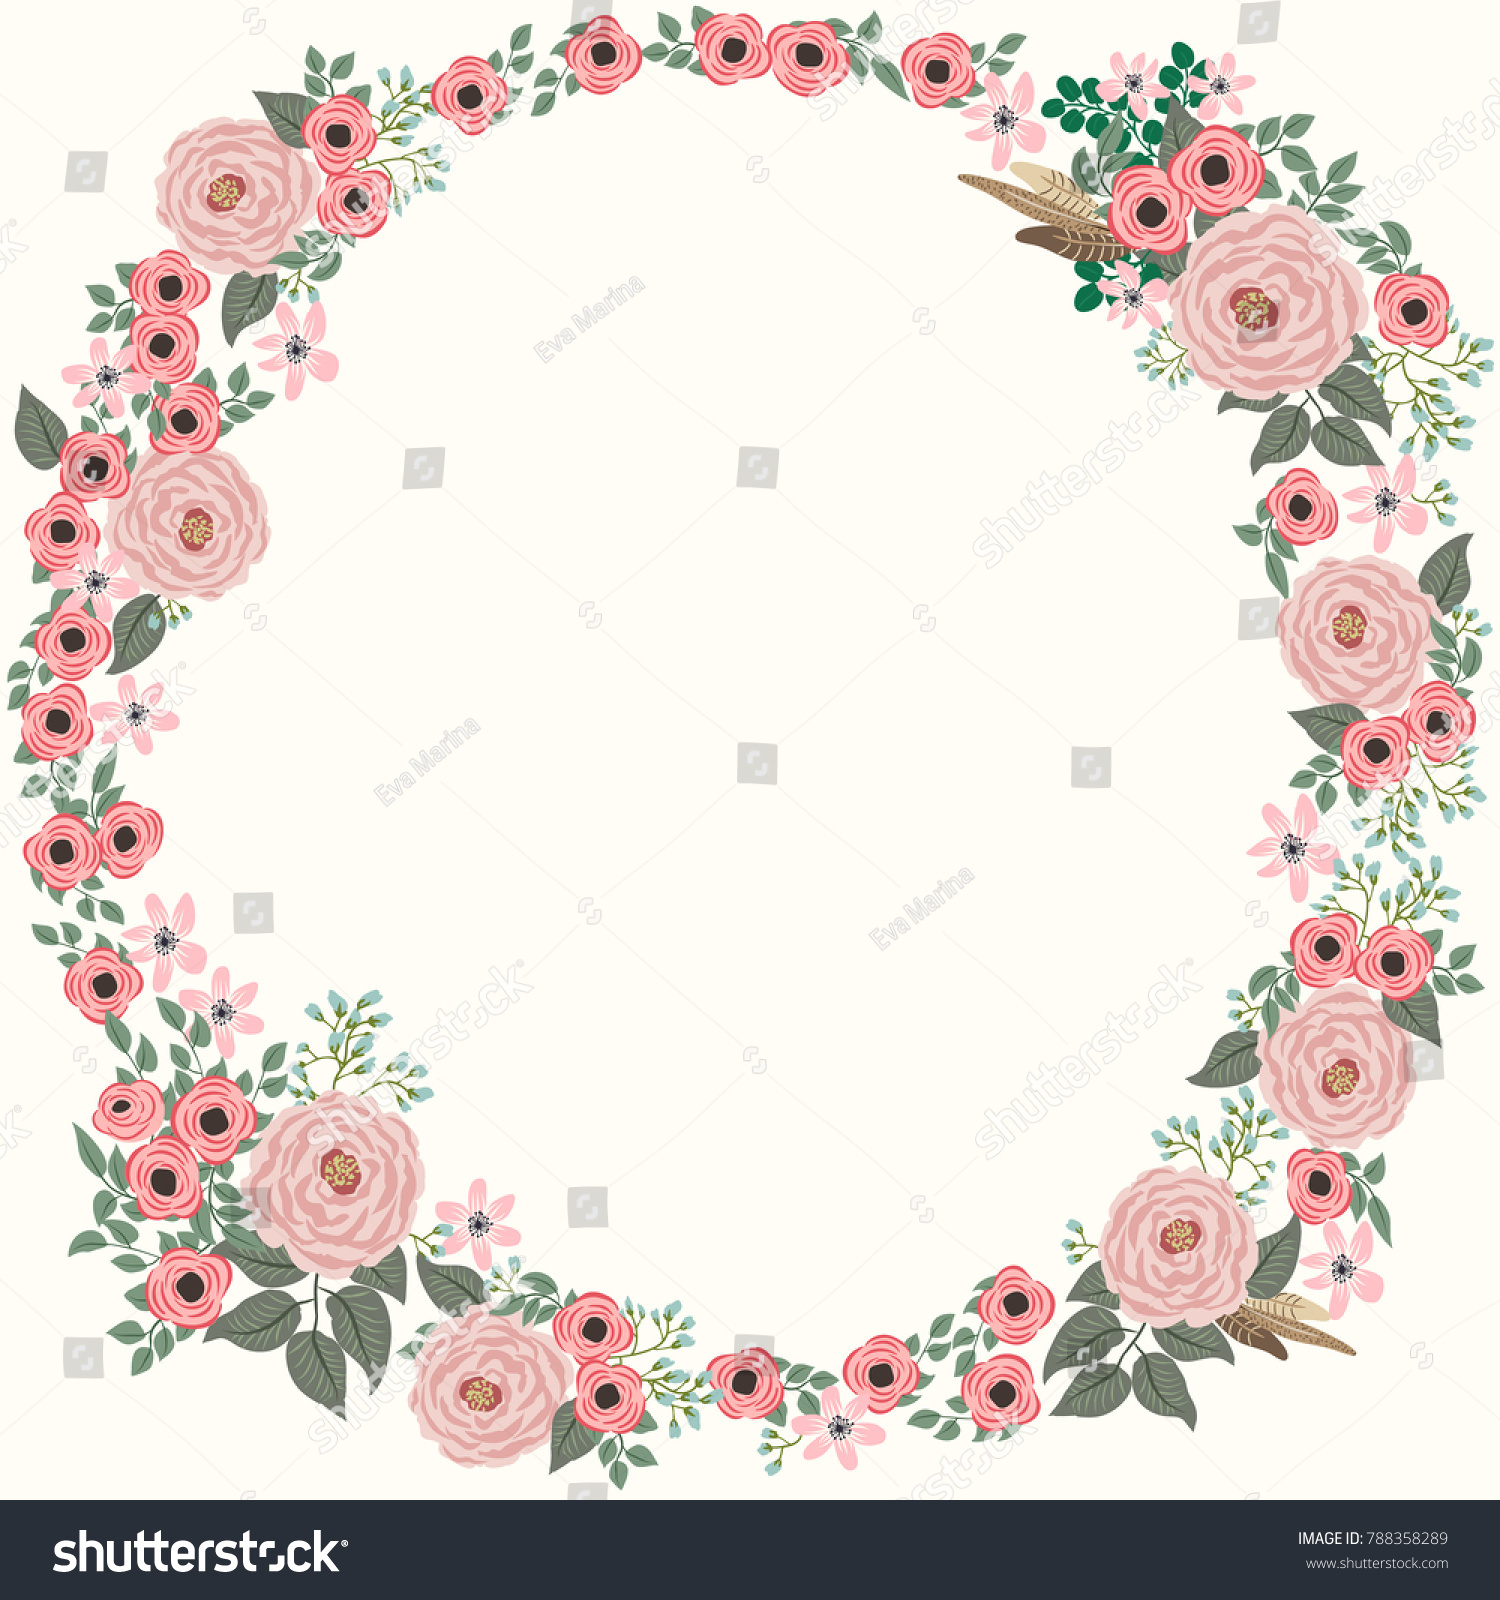 Floral round frame from cute flowers greeting card template design id 788358289 maxwellsz